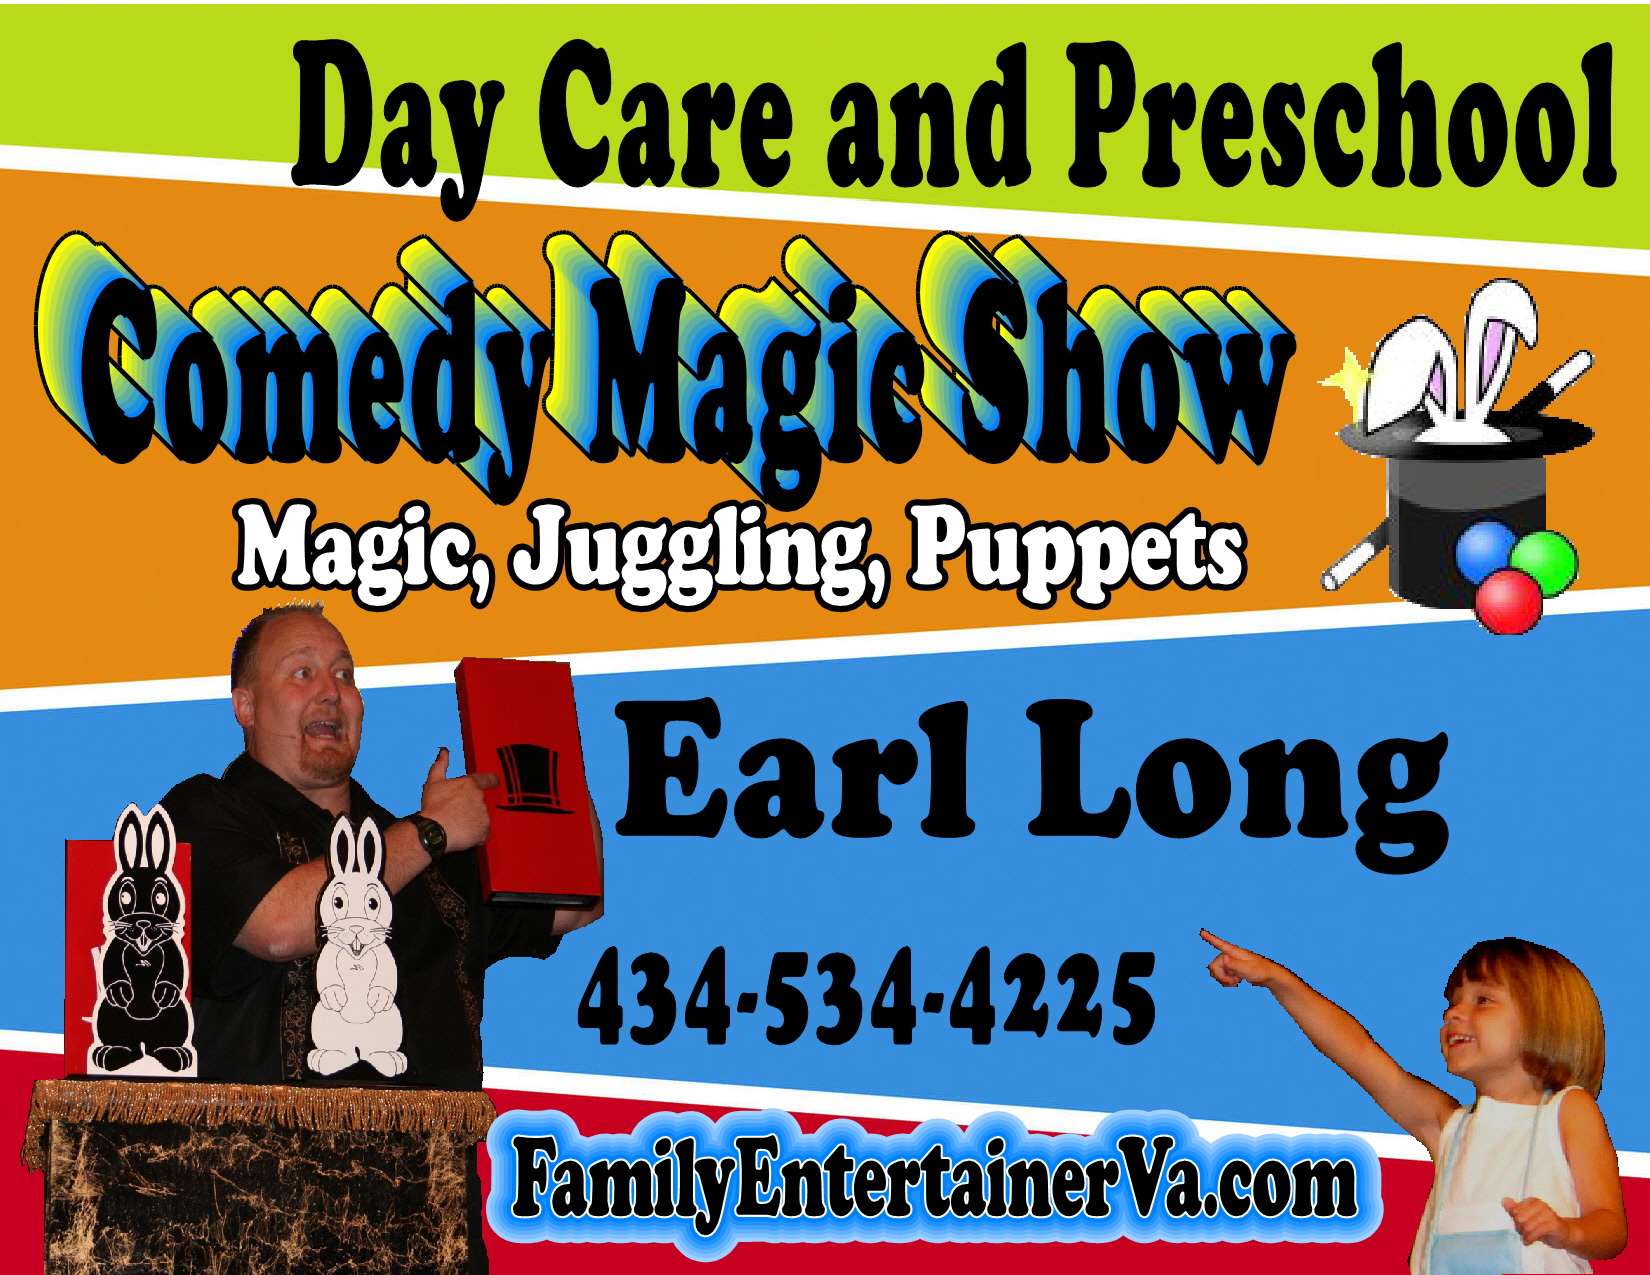 Preschool Comedy Magic Show_001